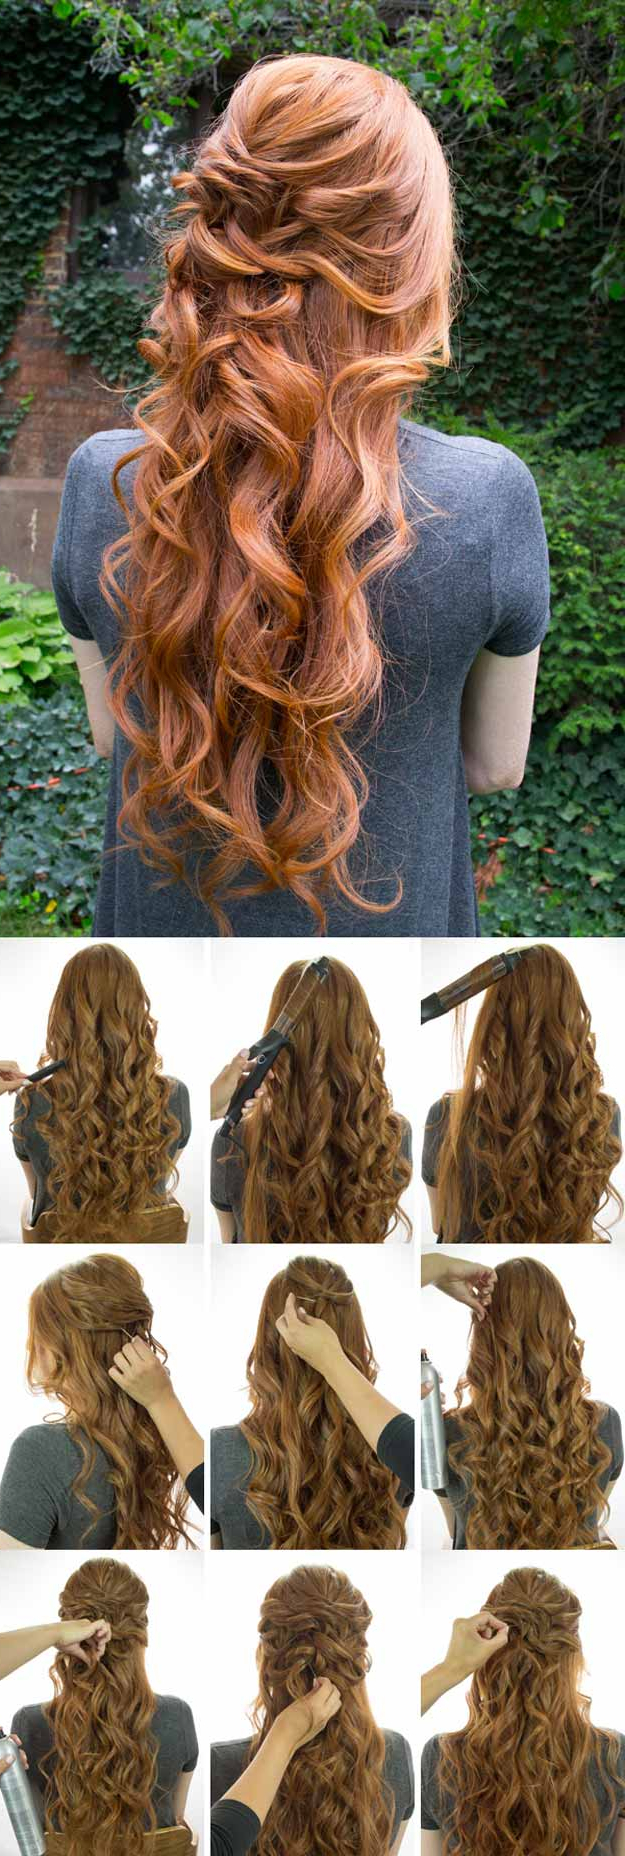 Widely Used Half Up Curls Hairstyles For Wedding Throughout 31 Wedding Hairstyles For Long Hair – The Goddess (View 18 of 20)